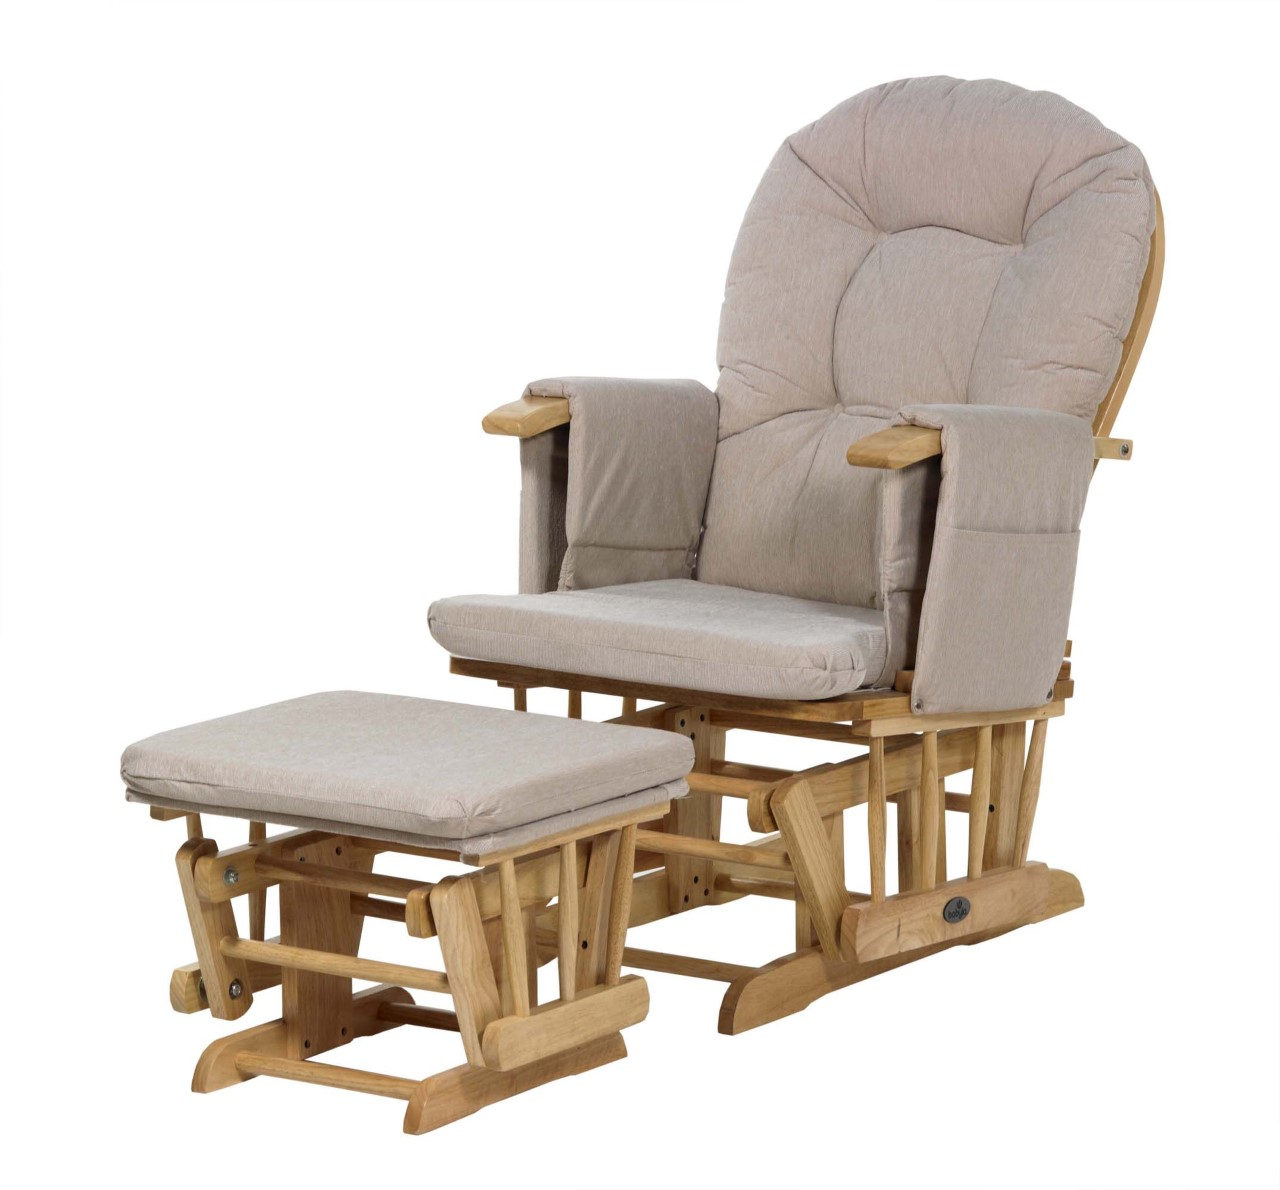 Babylo Monaco Glider Chair Best For Baby